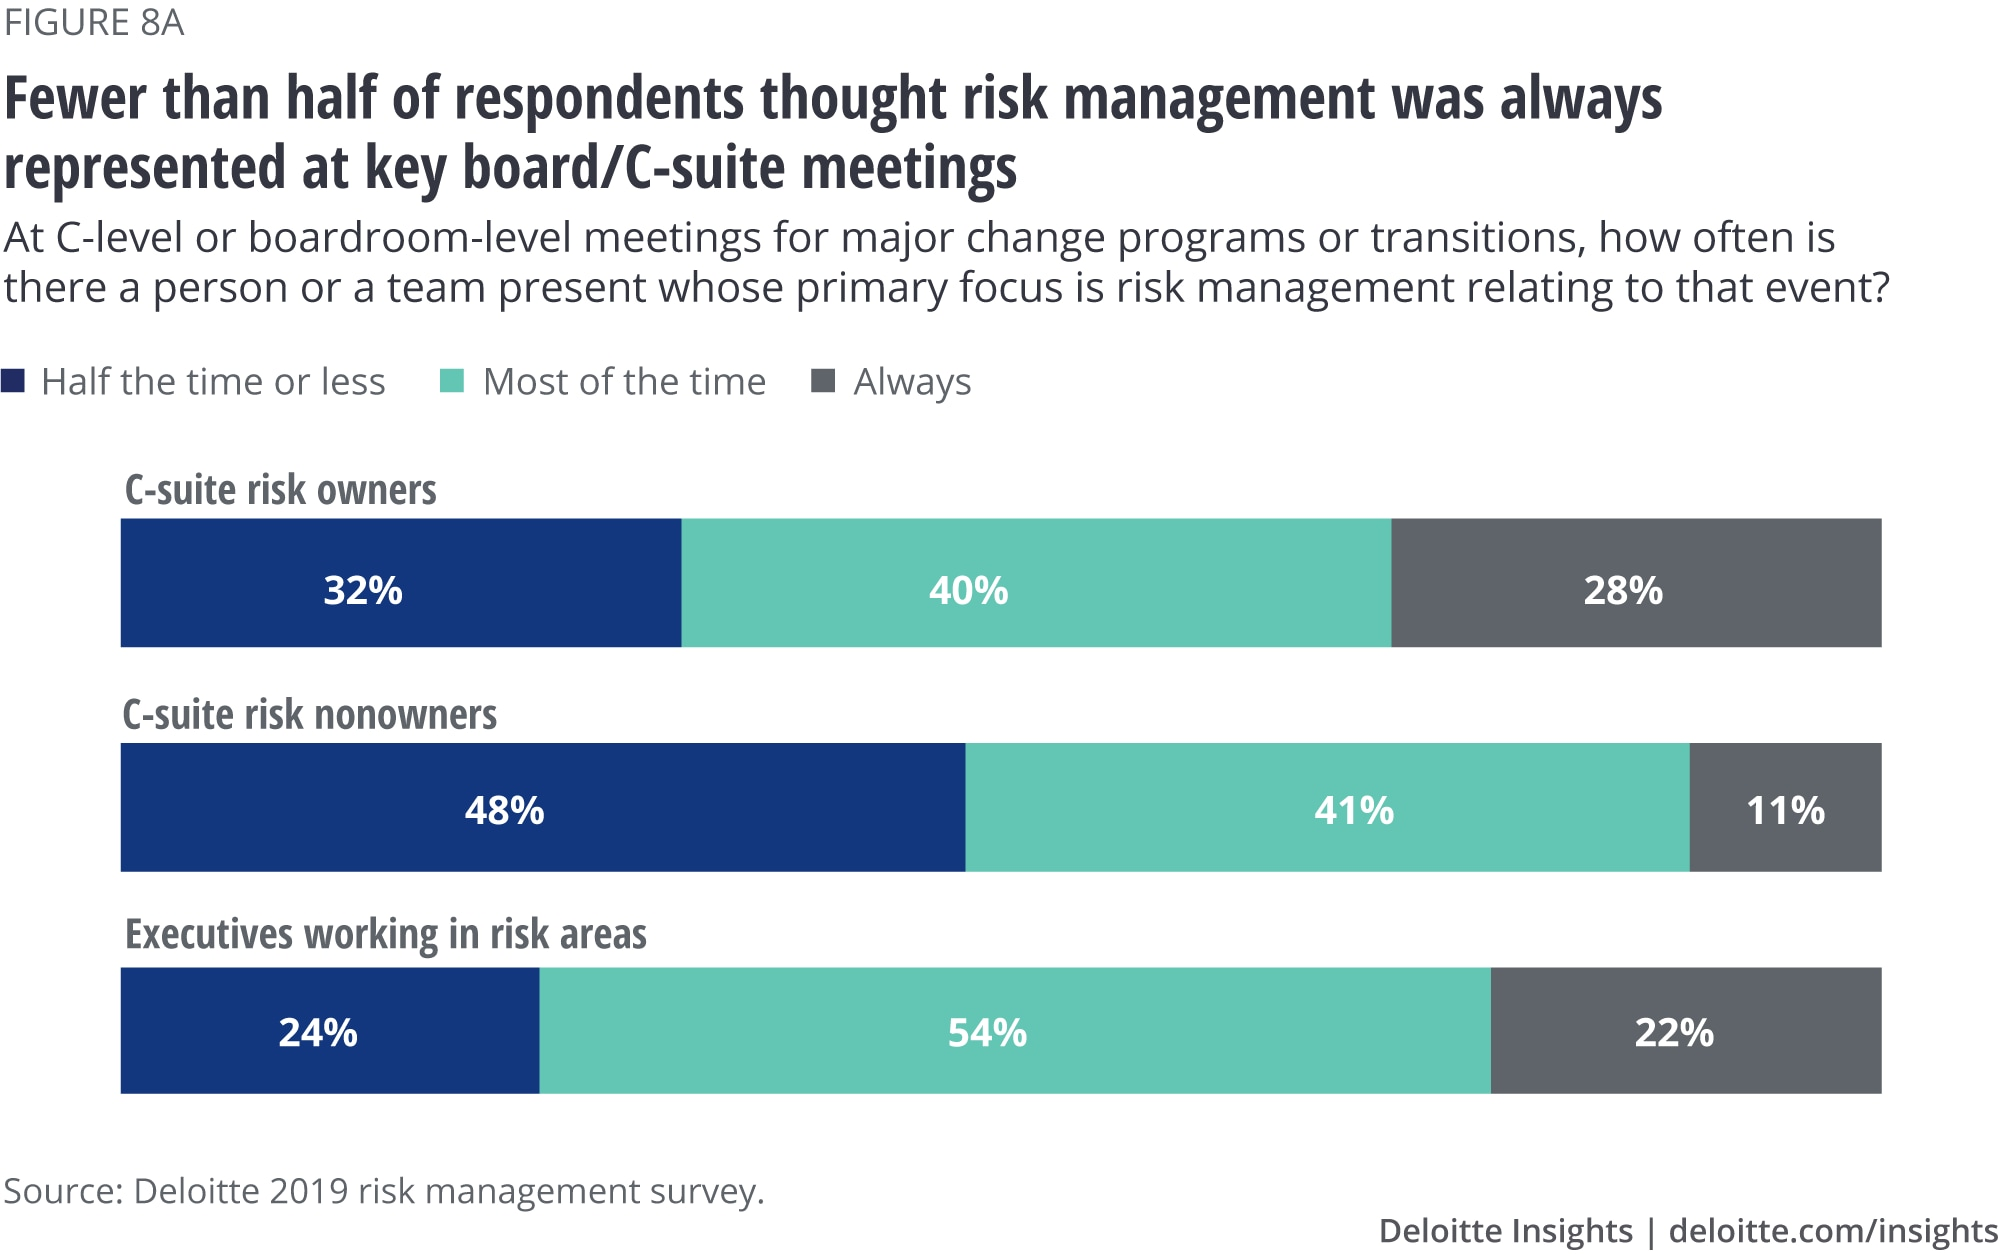 Fewer than half of respondents thought risk management was always represented at key board/C-suite meetings